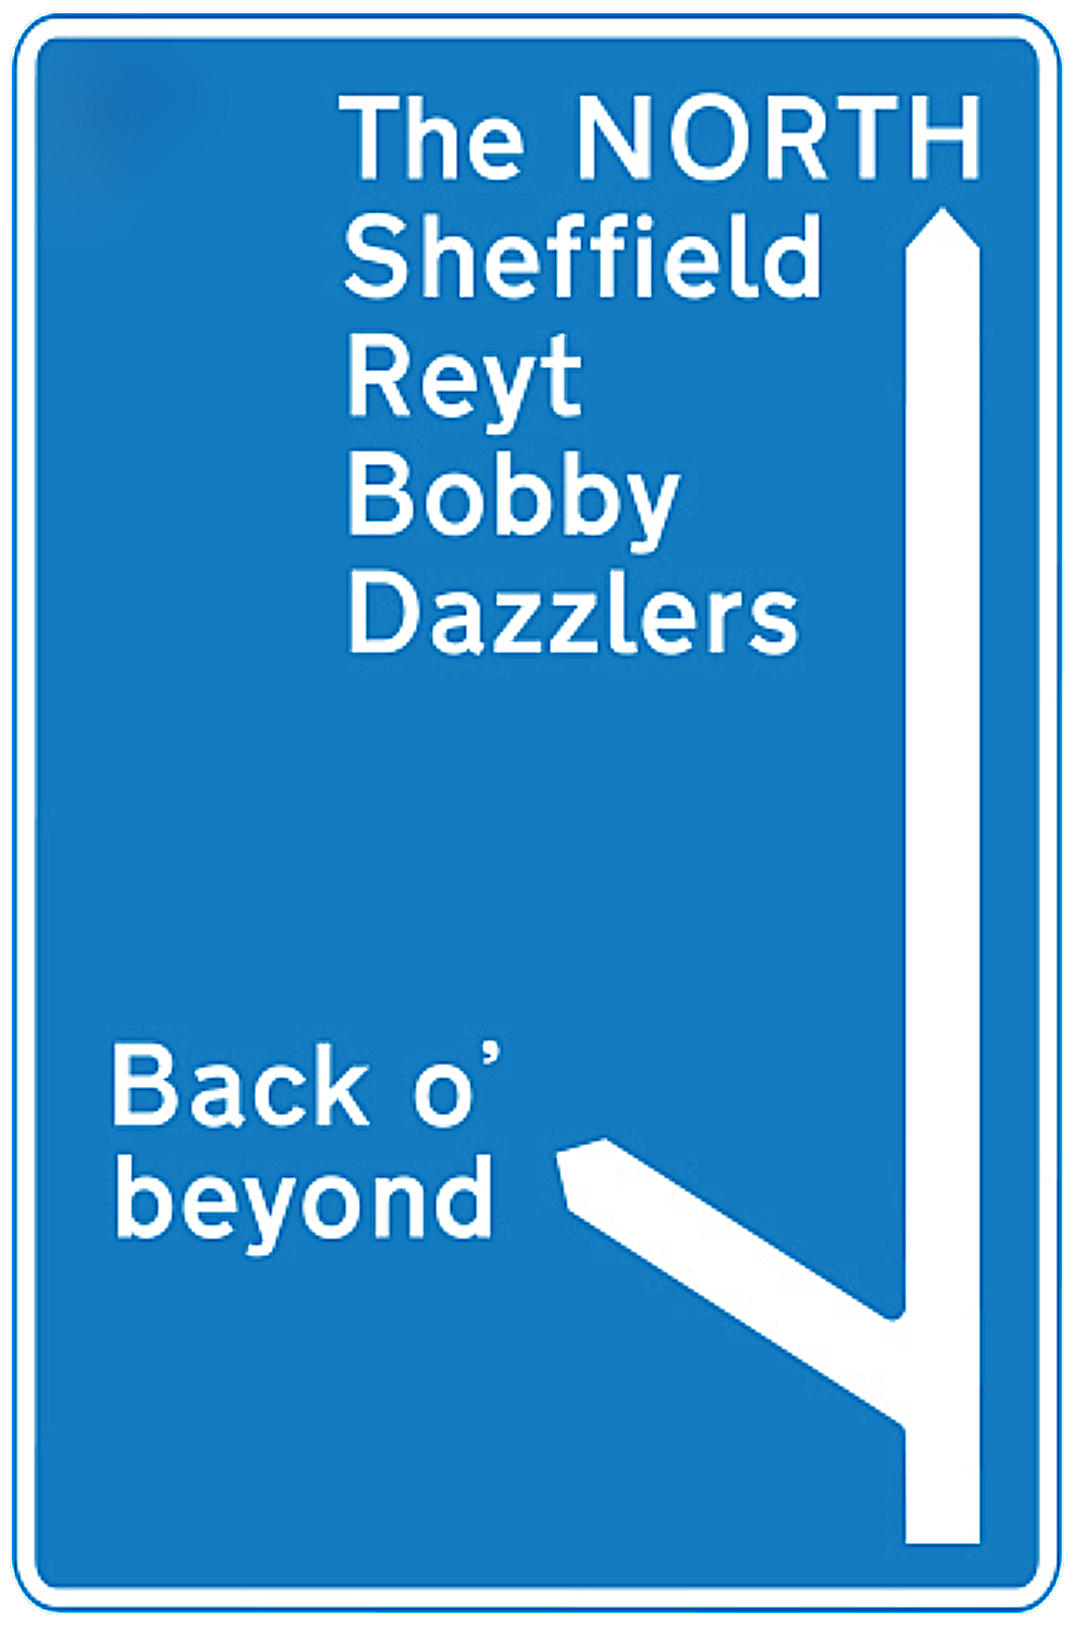 Sheffield motorway sign reyt bobby dazzlers.png